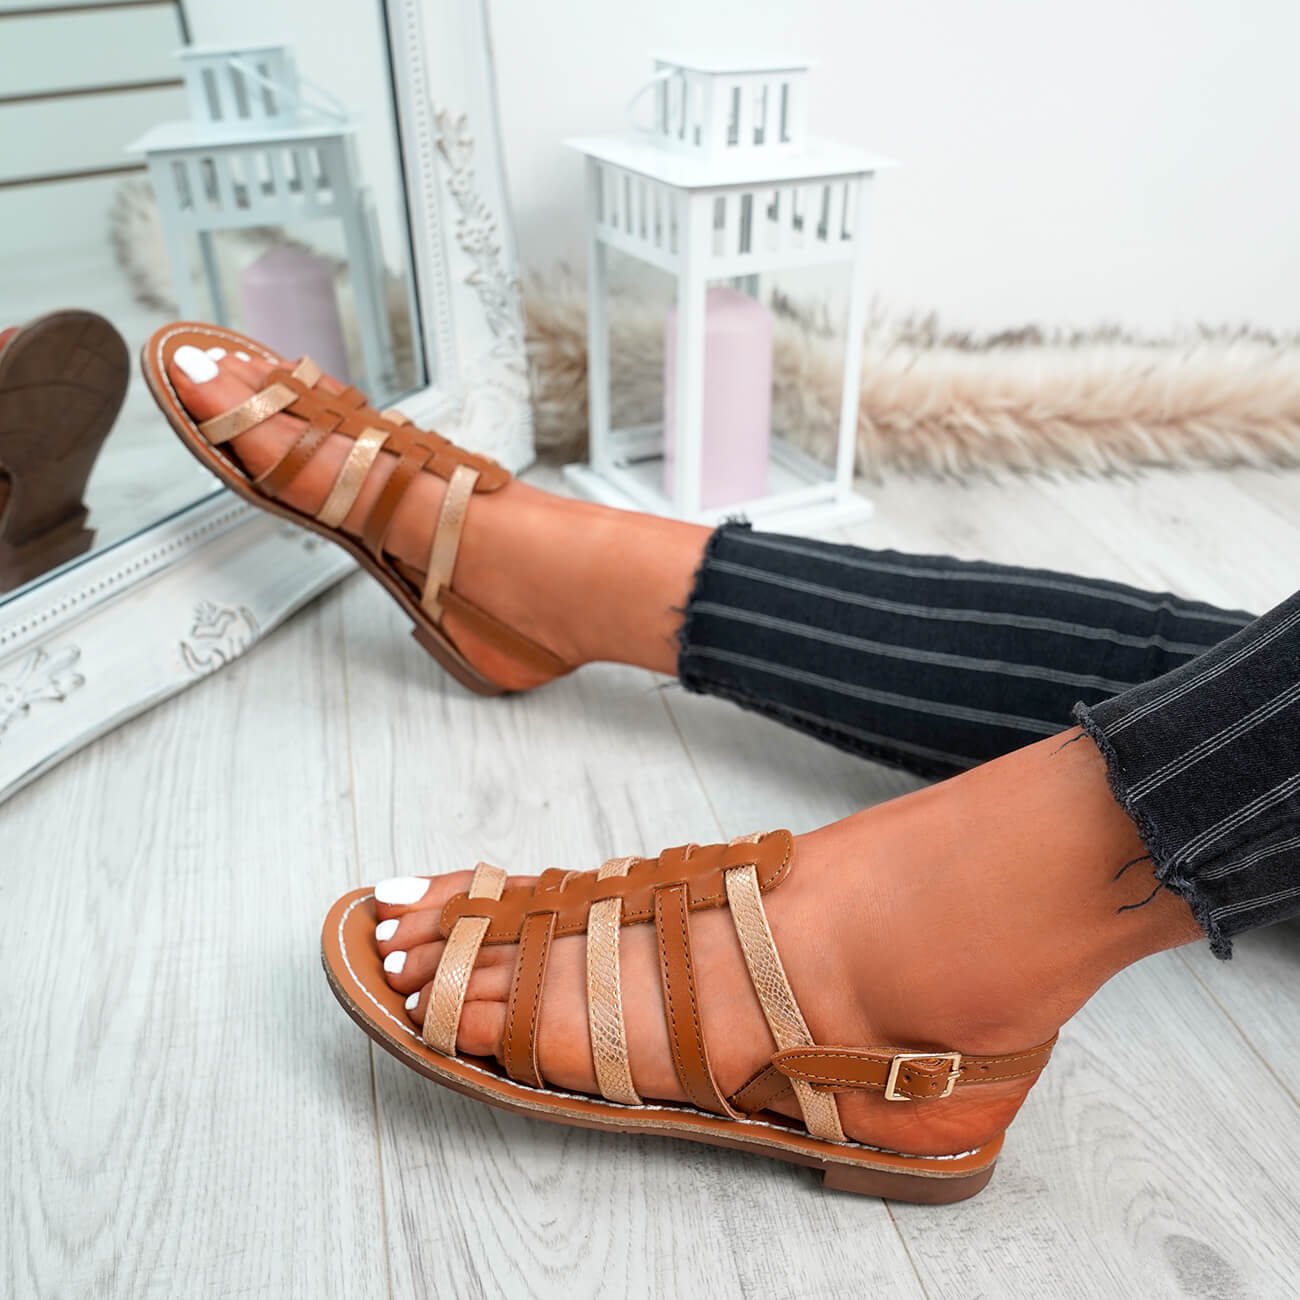 WOMENS-LADIES-BUCKLE-STRAP-FLAT-SUMMER-SANDALS-CASUAL-HOLIDAY-COMFY-SHOES-SIZE thumbnail 14